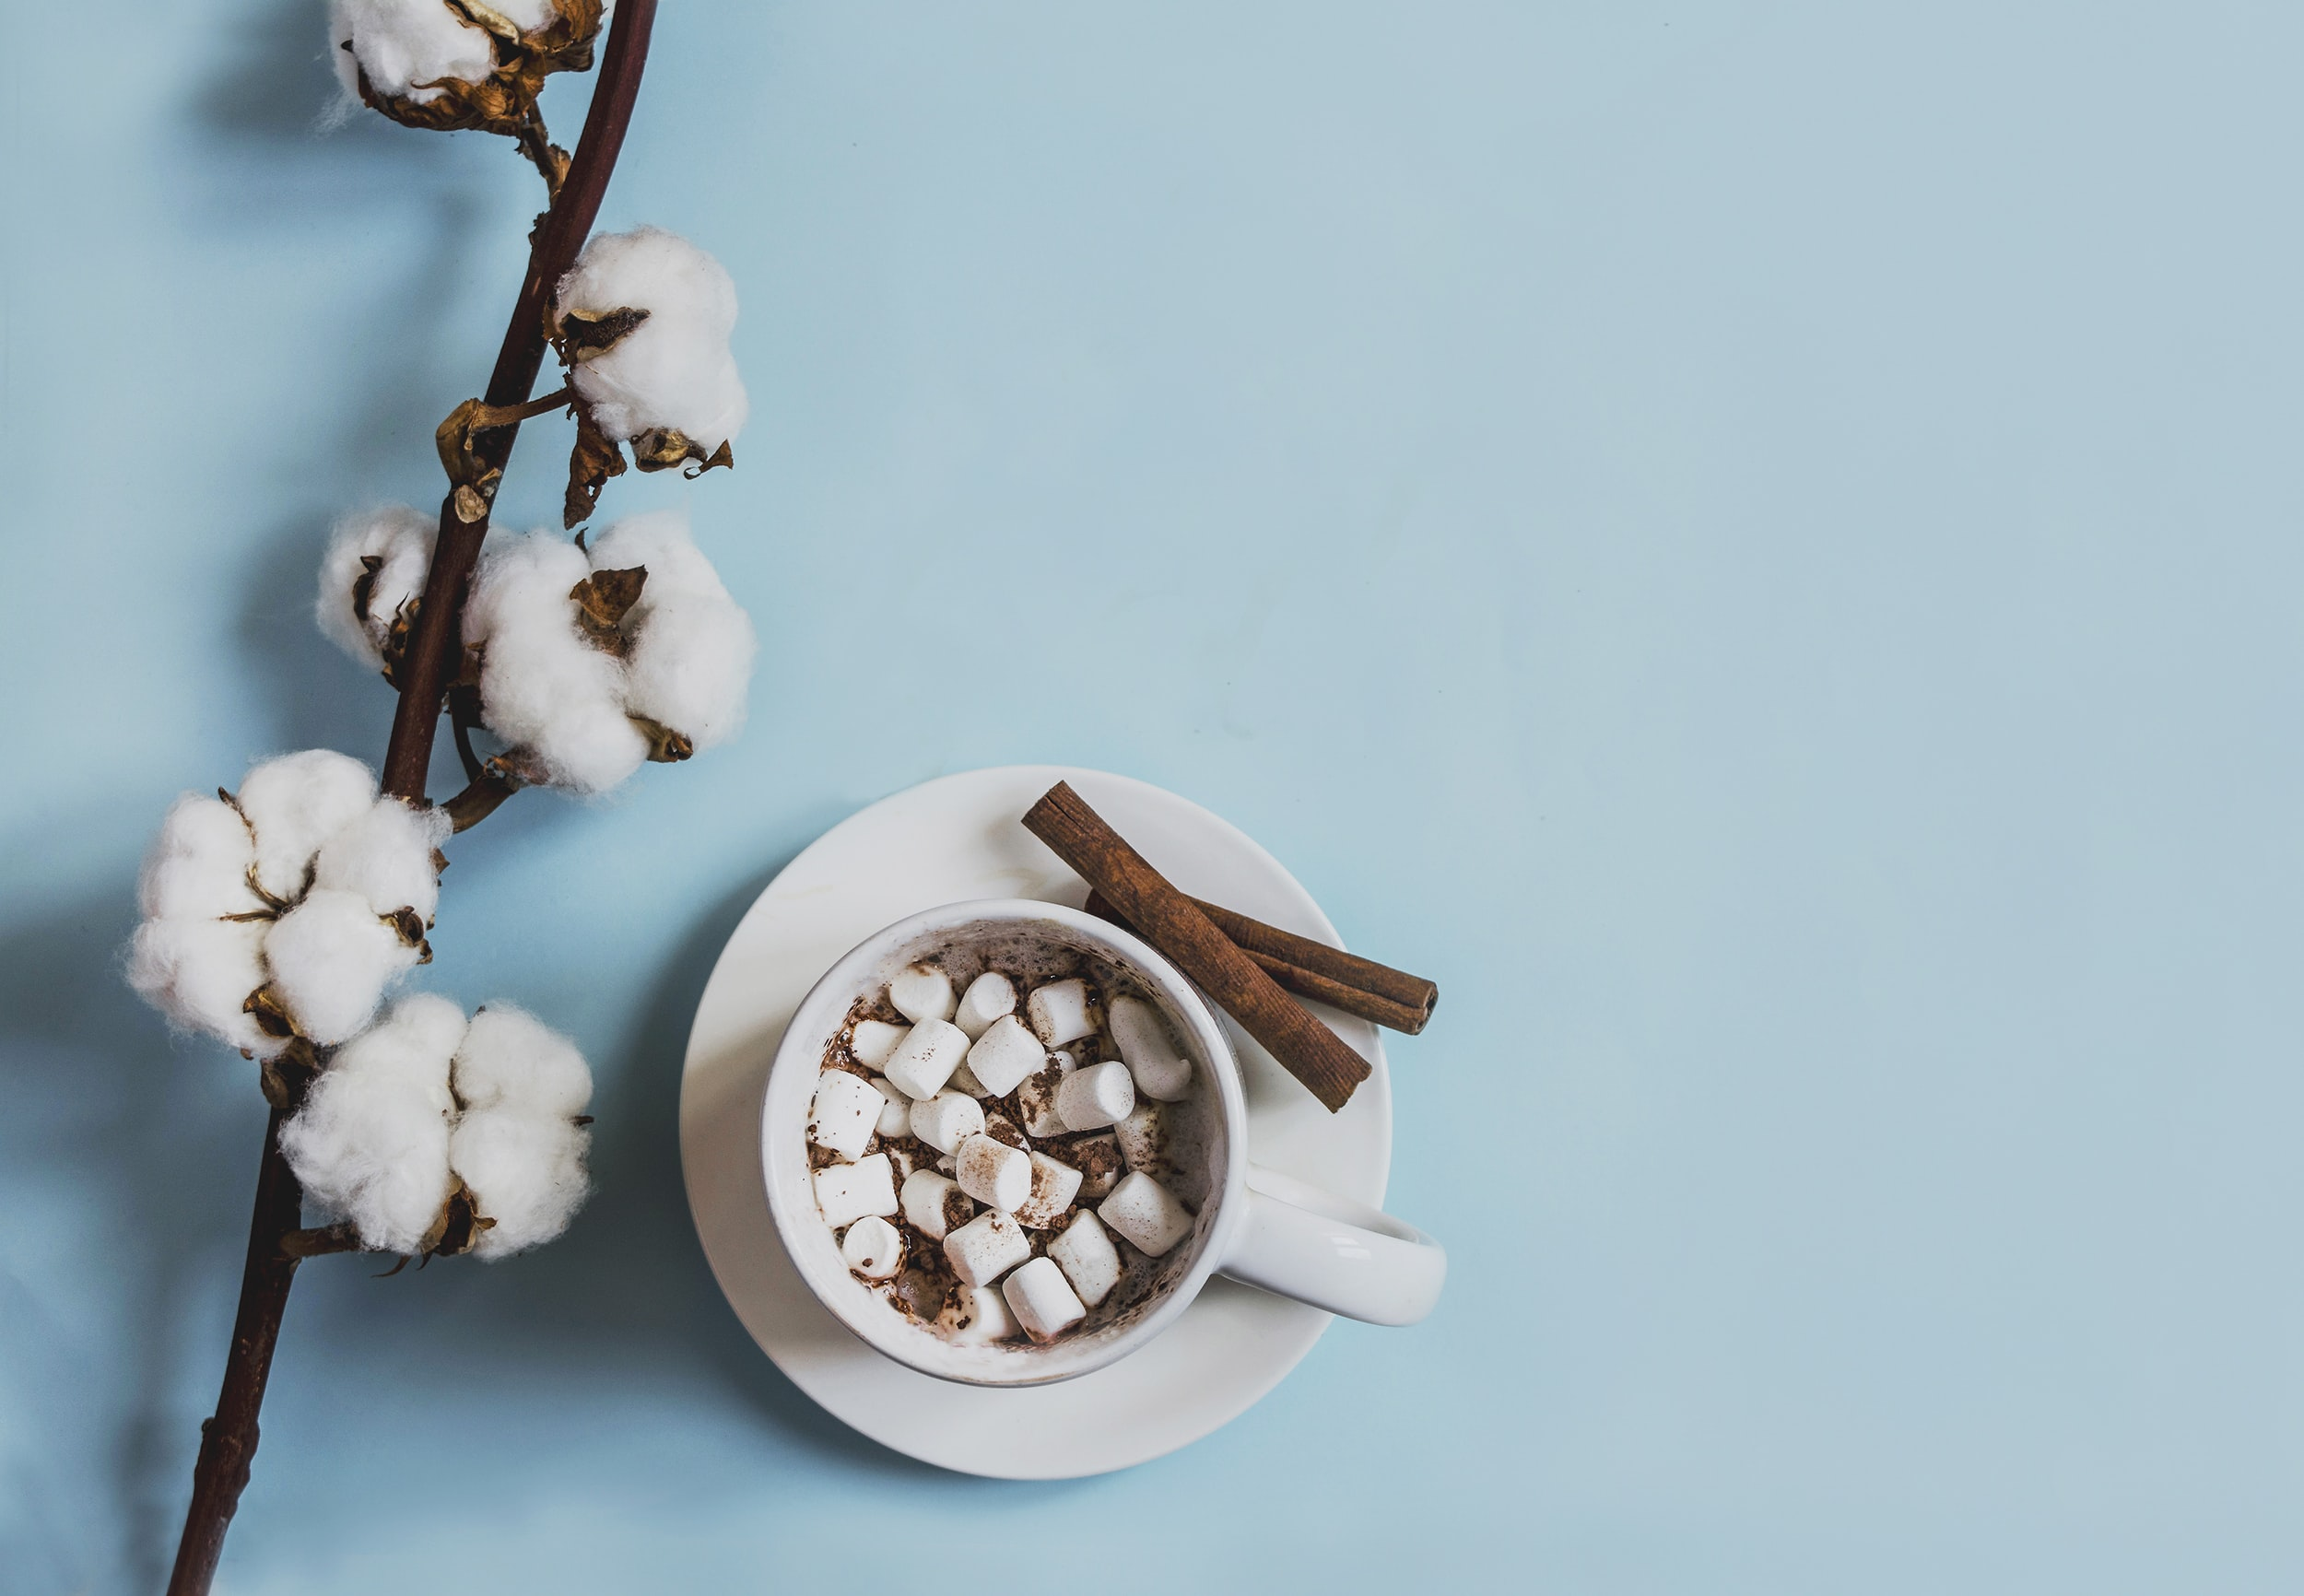 white ceramic mug filled with marshmallows beside cinnamon sticks placed on round white ceramic saucer near white cuttons